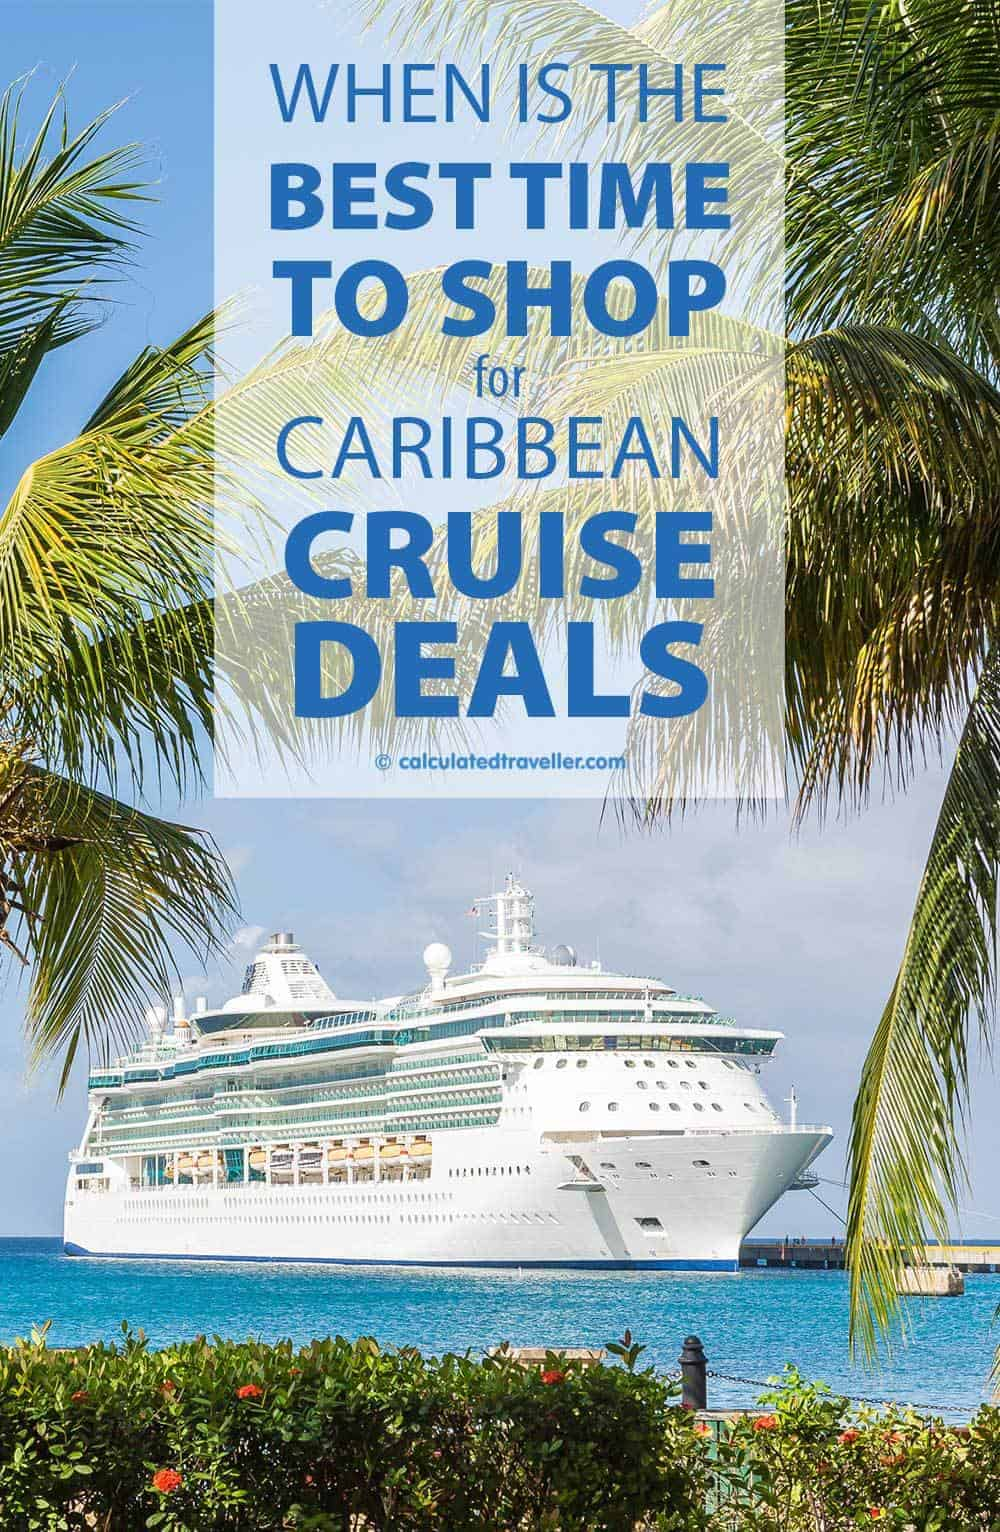 Ever Wonder... When is the Best Time to Shop for Caribbean Cruise deals? Check out this article by Calculated Traveller